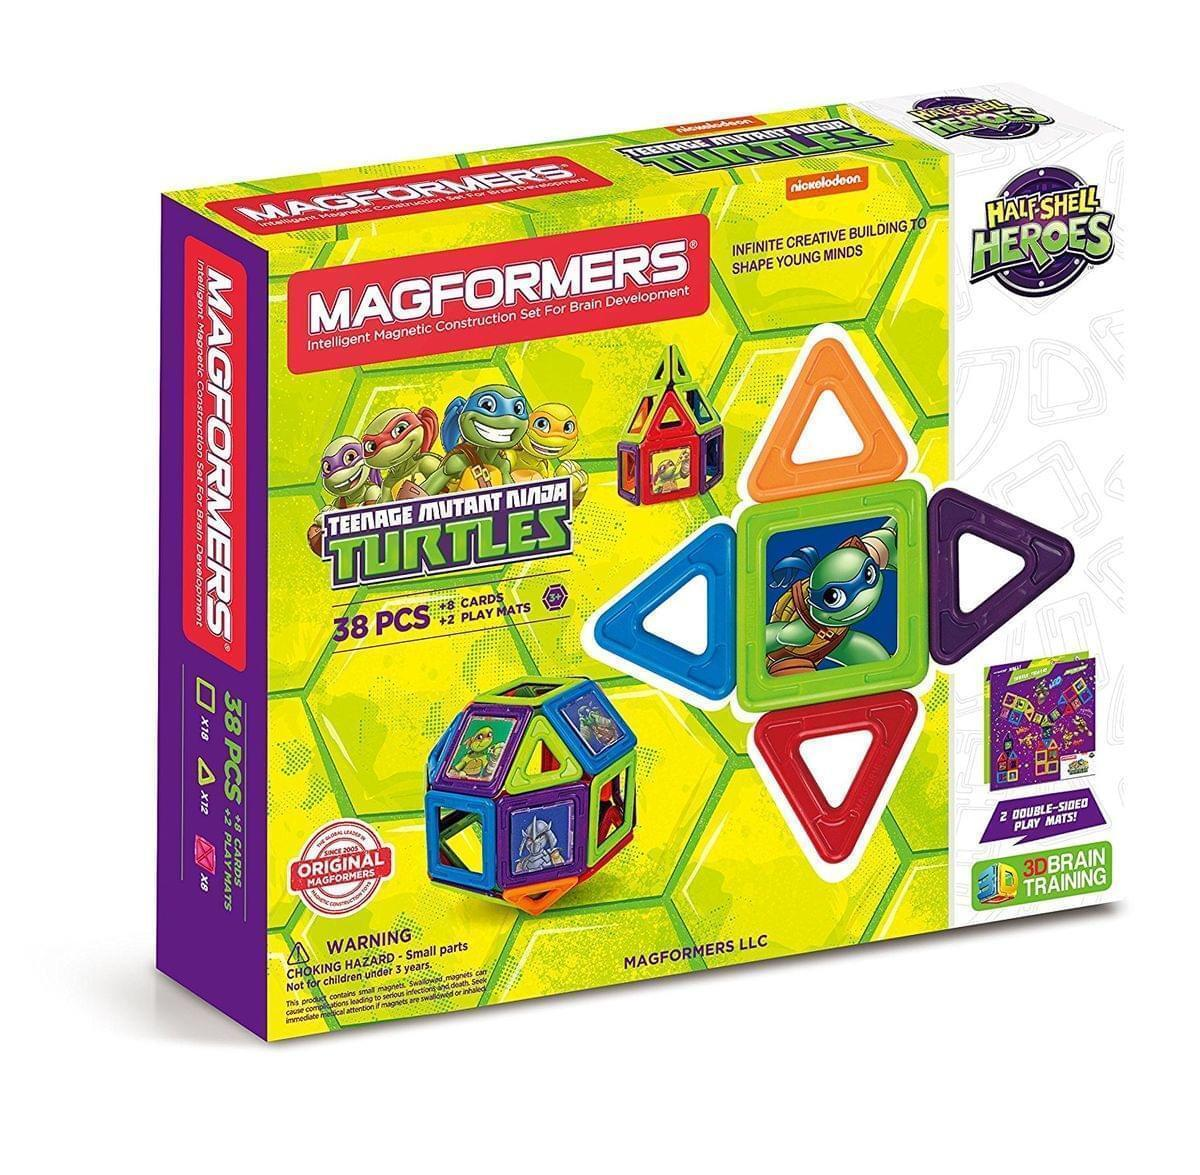 Magformers Teenage Mutant Ninja Turtles Building Set (38 PCS) New